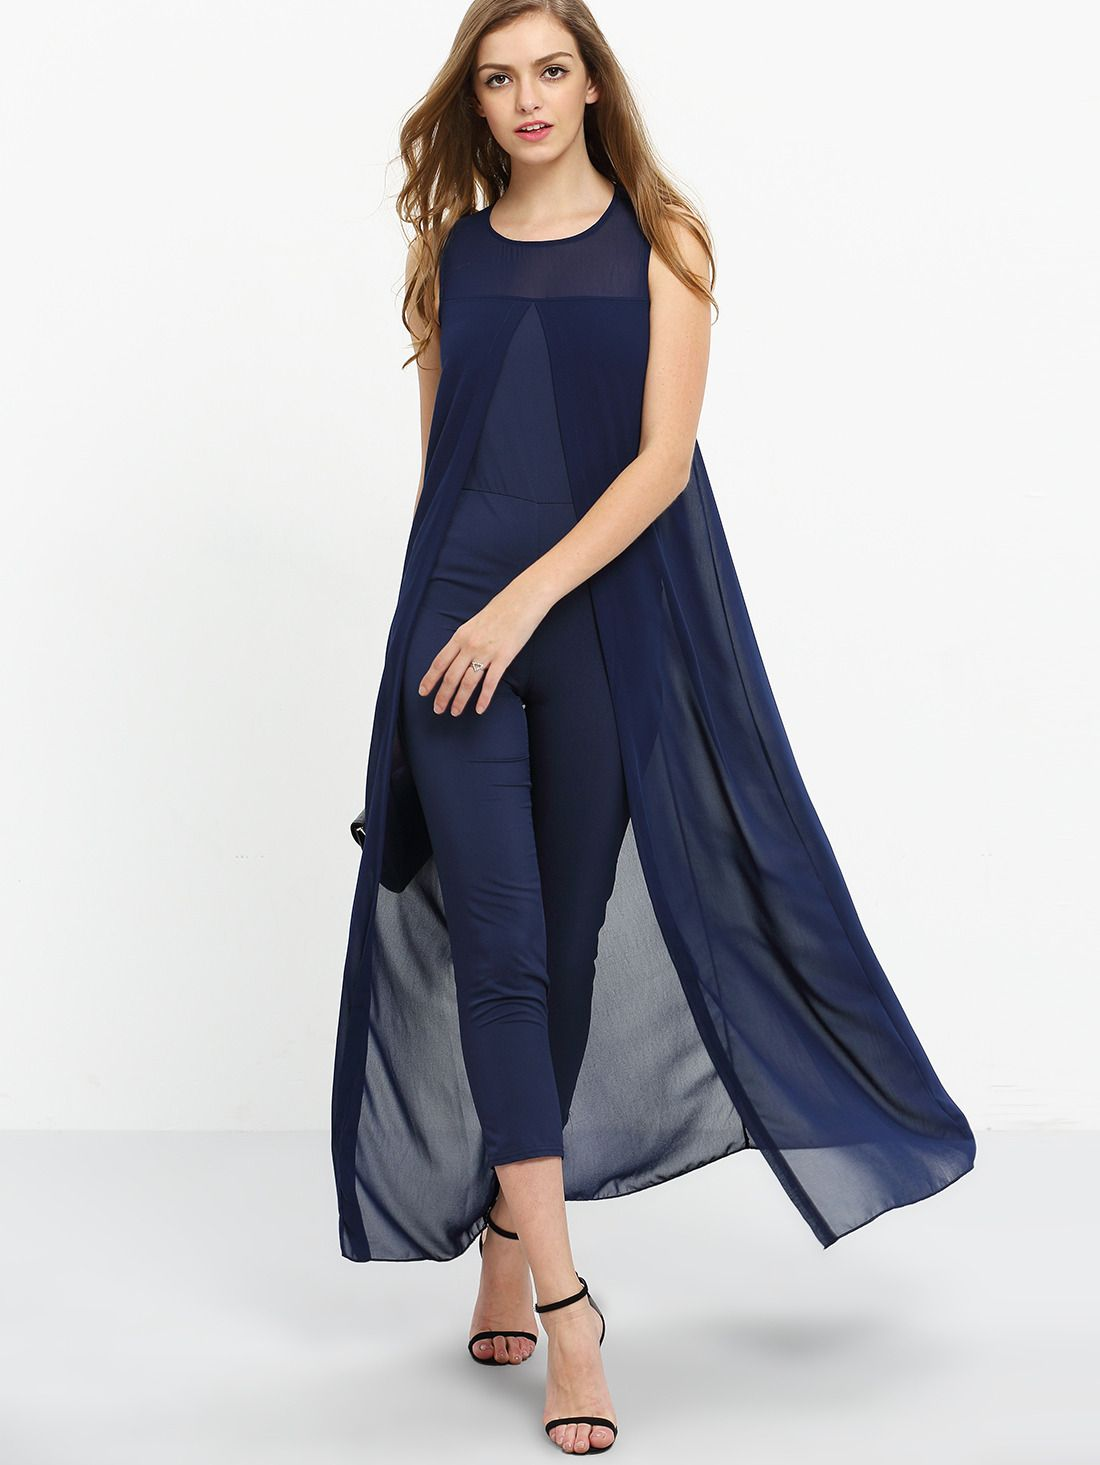 ae218f2bf51541 Shop Chiffon Overlay Skinny Jumpsuit - Navy online. SheIn offers Chiffon  Overlay Skinny Jumpsuit - Navy   more to fit your fashionable needs.